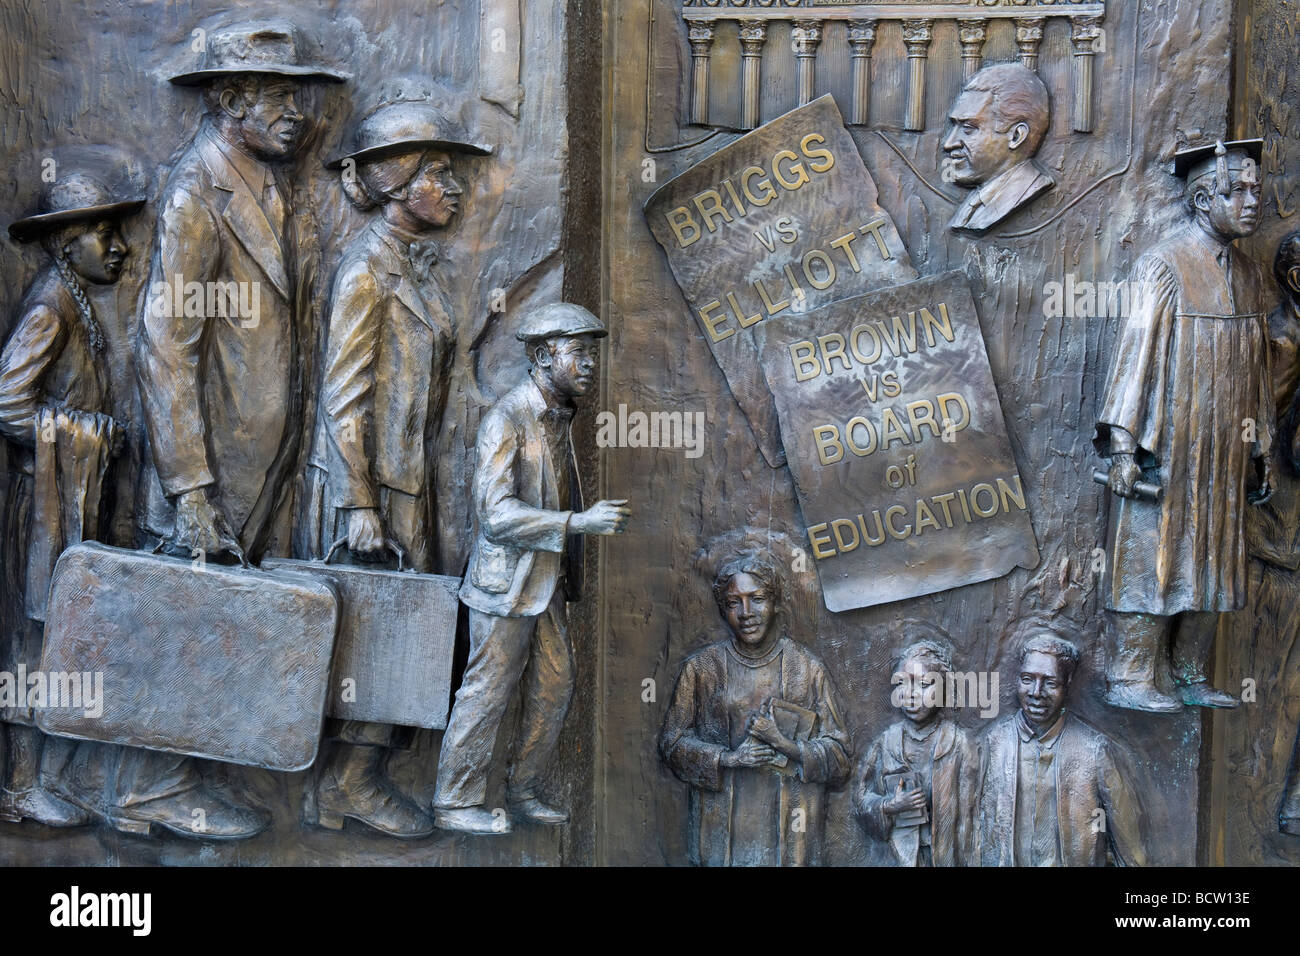 African American History Monument by Ed Dwight, State Capitol Grounds, Columbia, South Carolina, USA - Stock Image